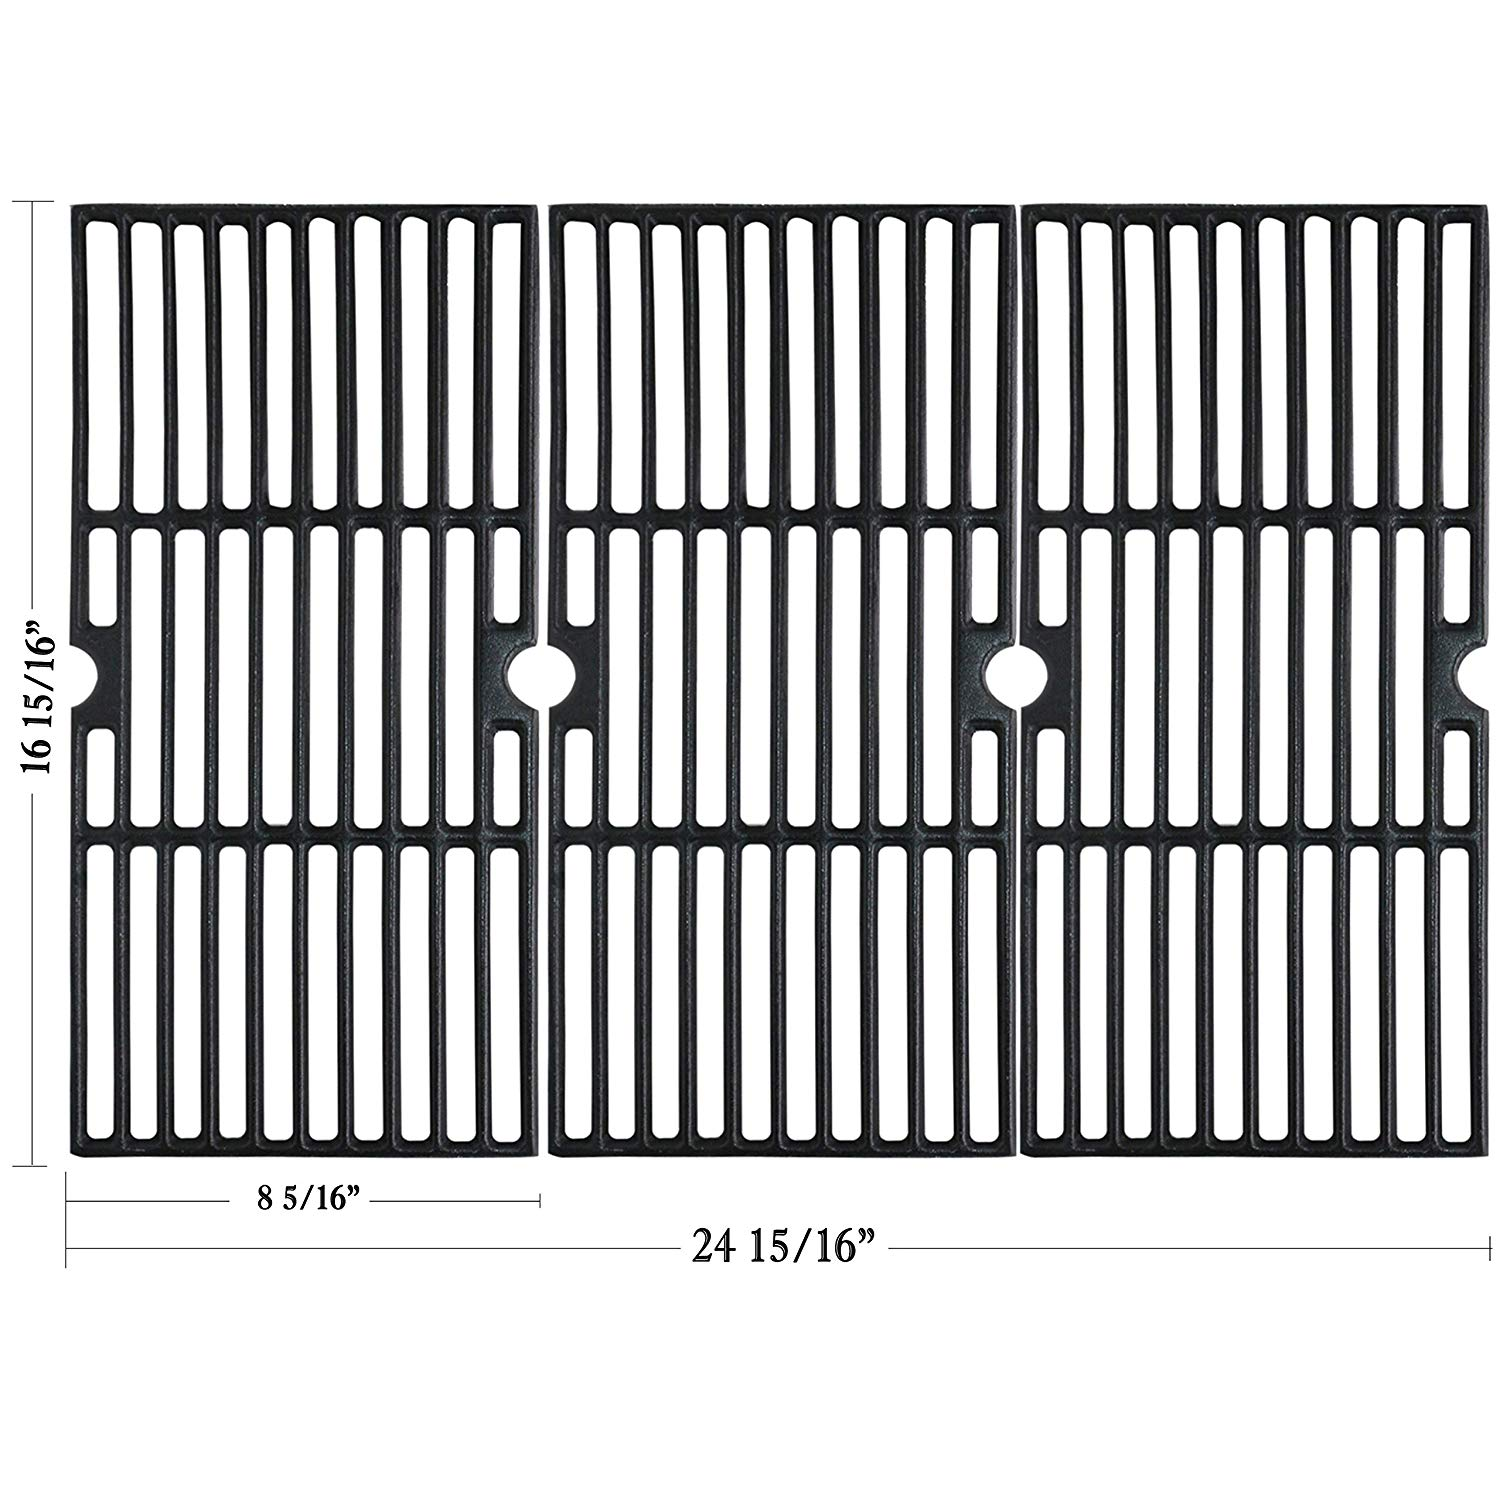 Hisencn Cast Iron Cooking Grid